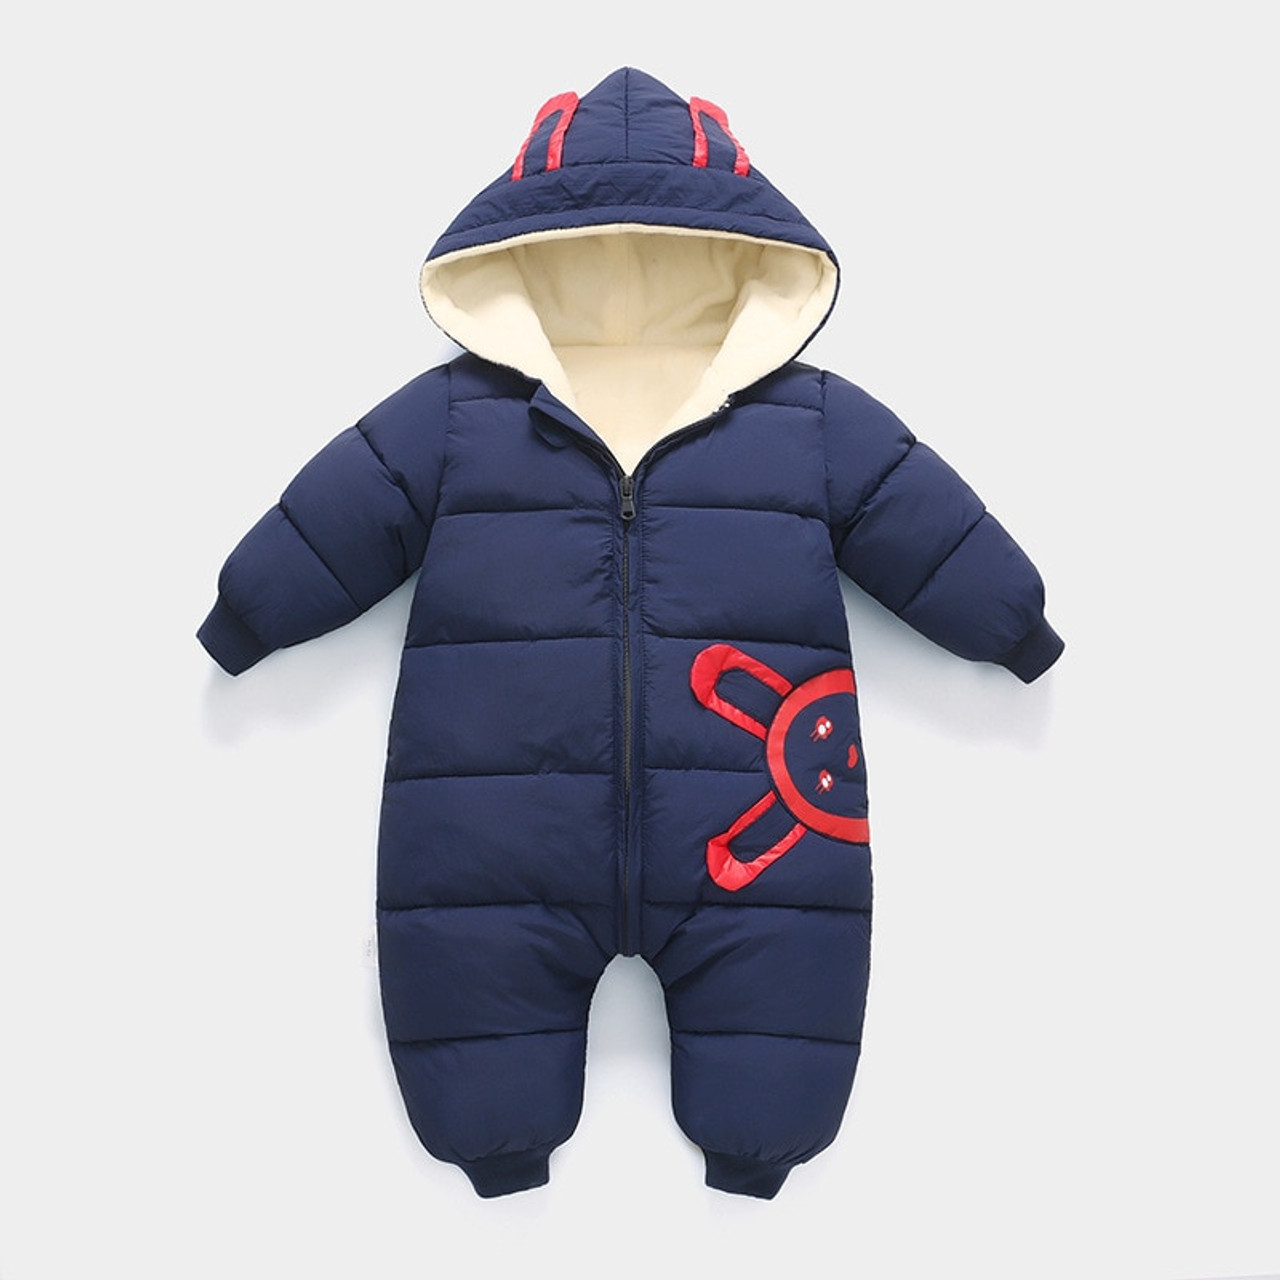 3dce39d3d Baby Rompers Winter Jackets for Baby Girls Clothing Spring Autumn ...